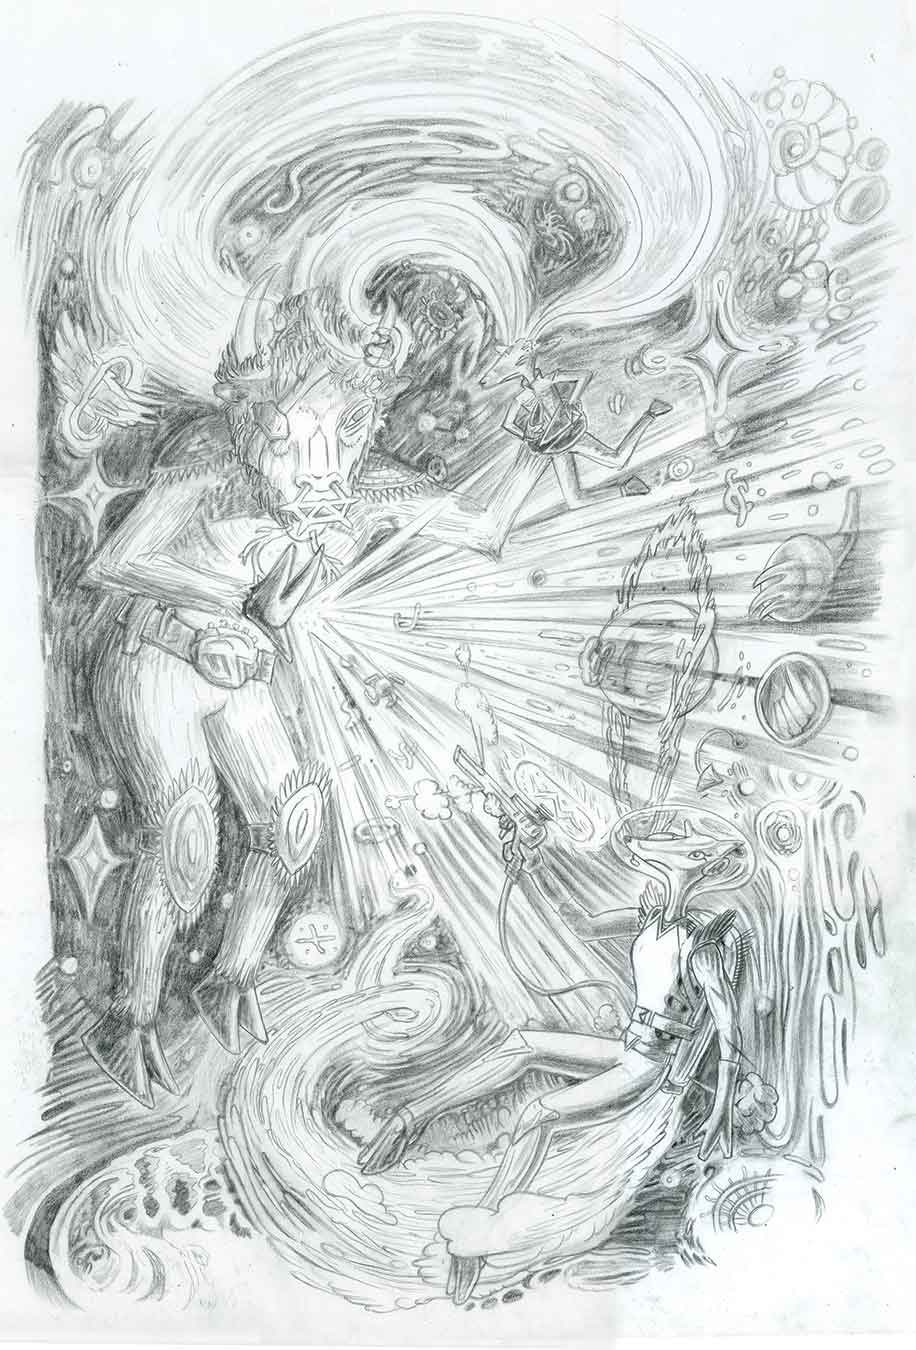 Drawing for  OUT THERE!,  a graphic novel by  Torso Inc. , graphite on paper